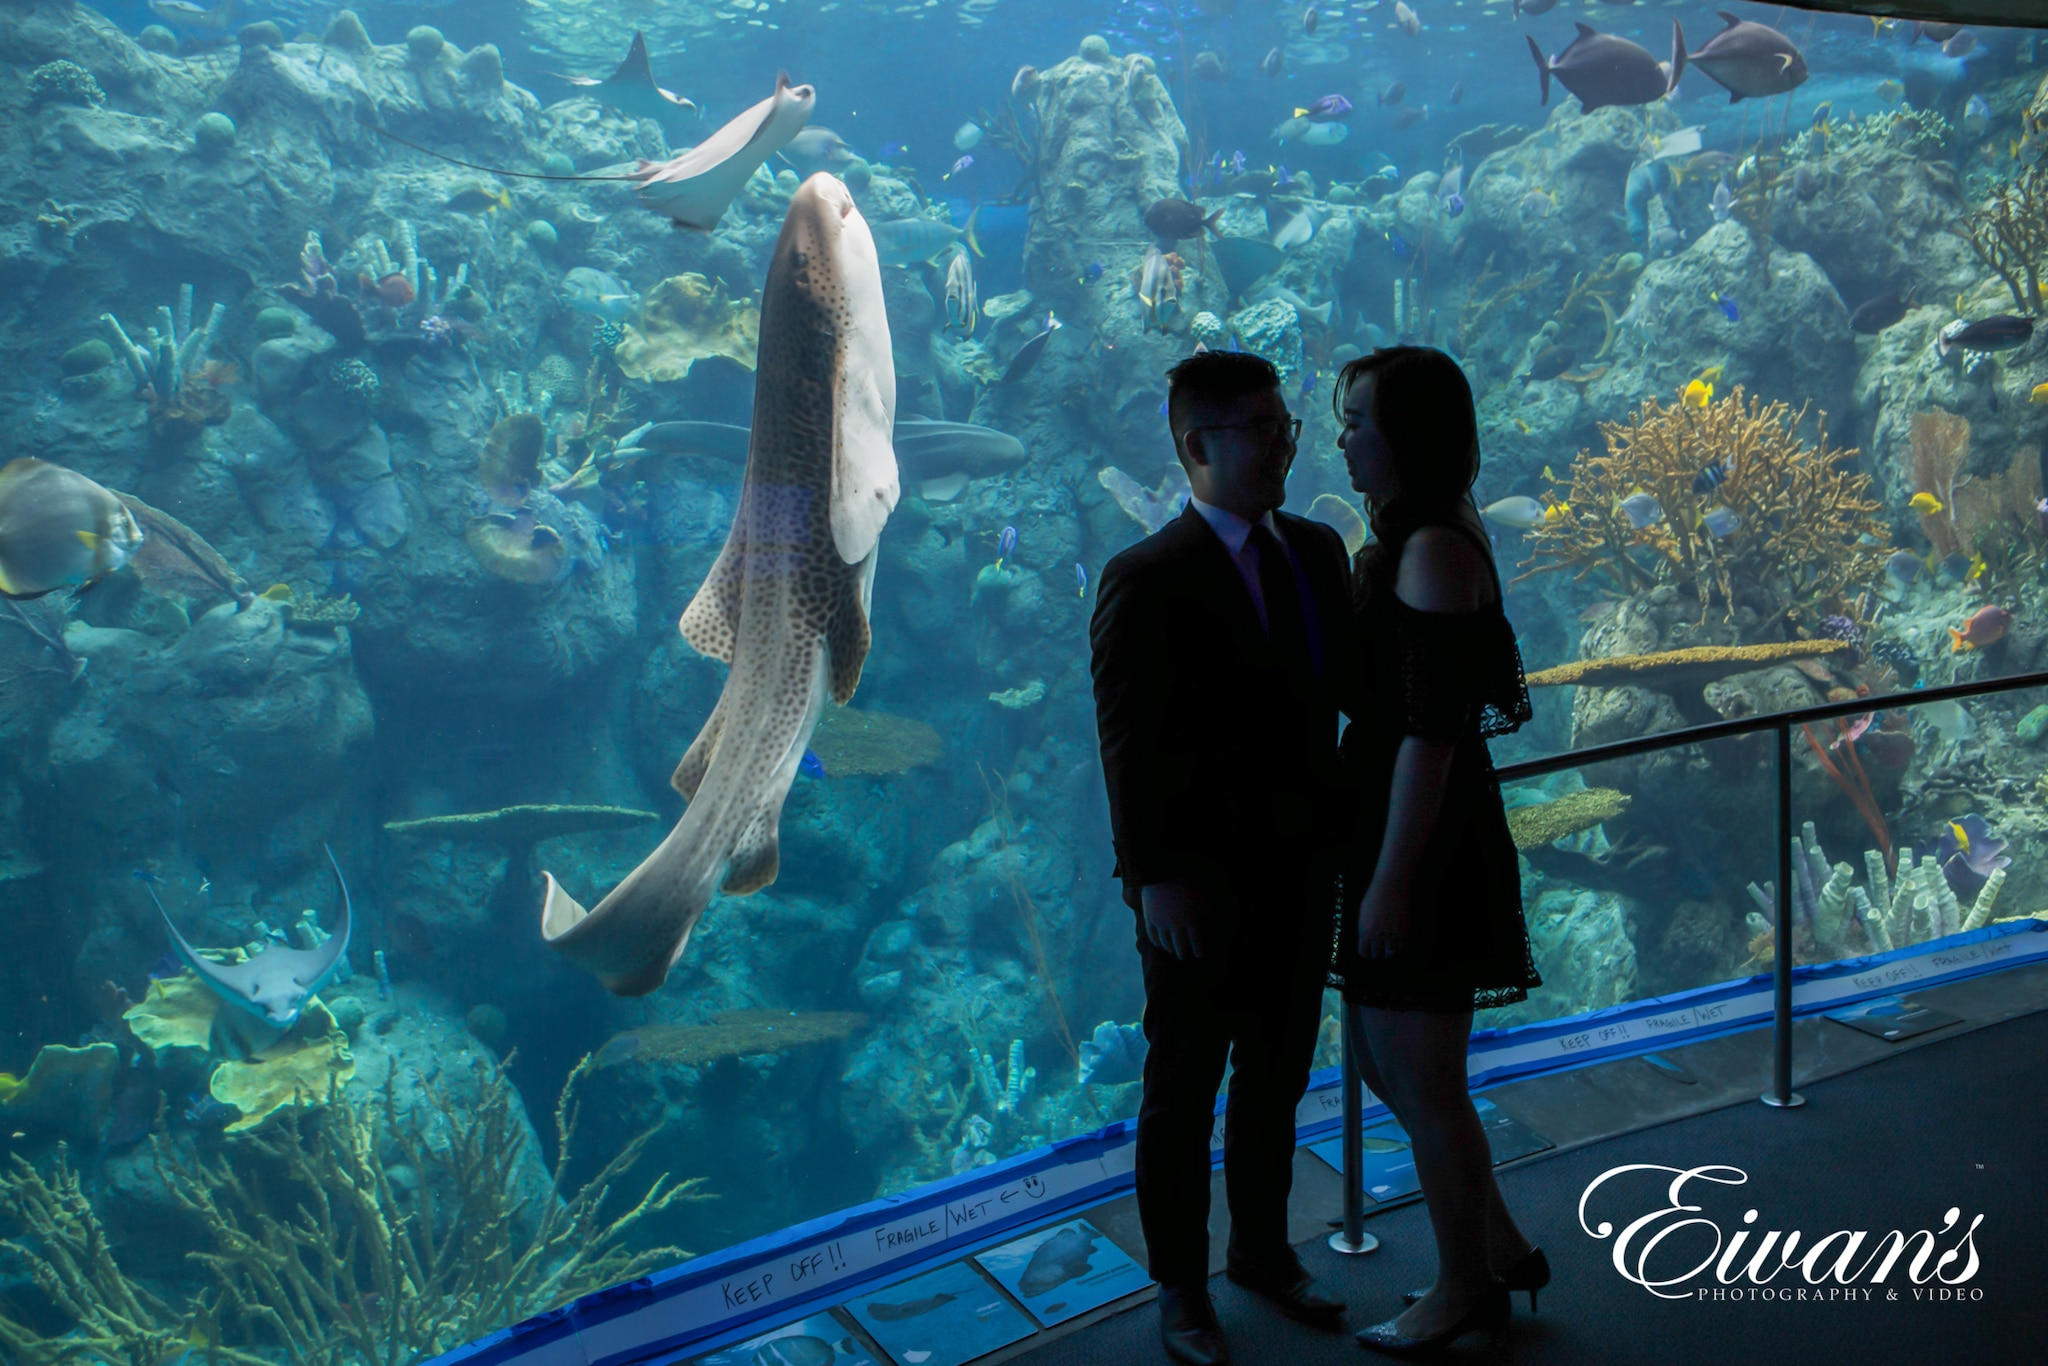 image of a married couple in the aquarium